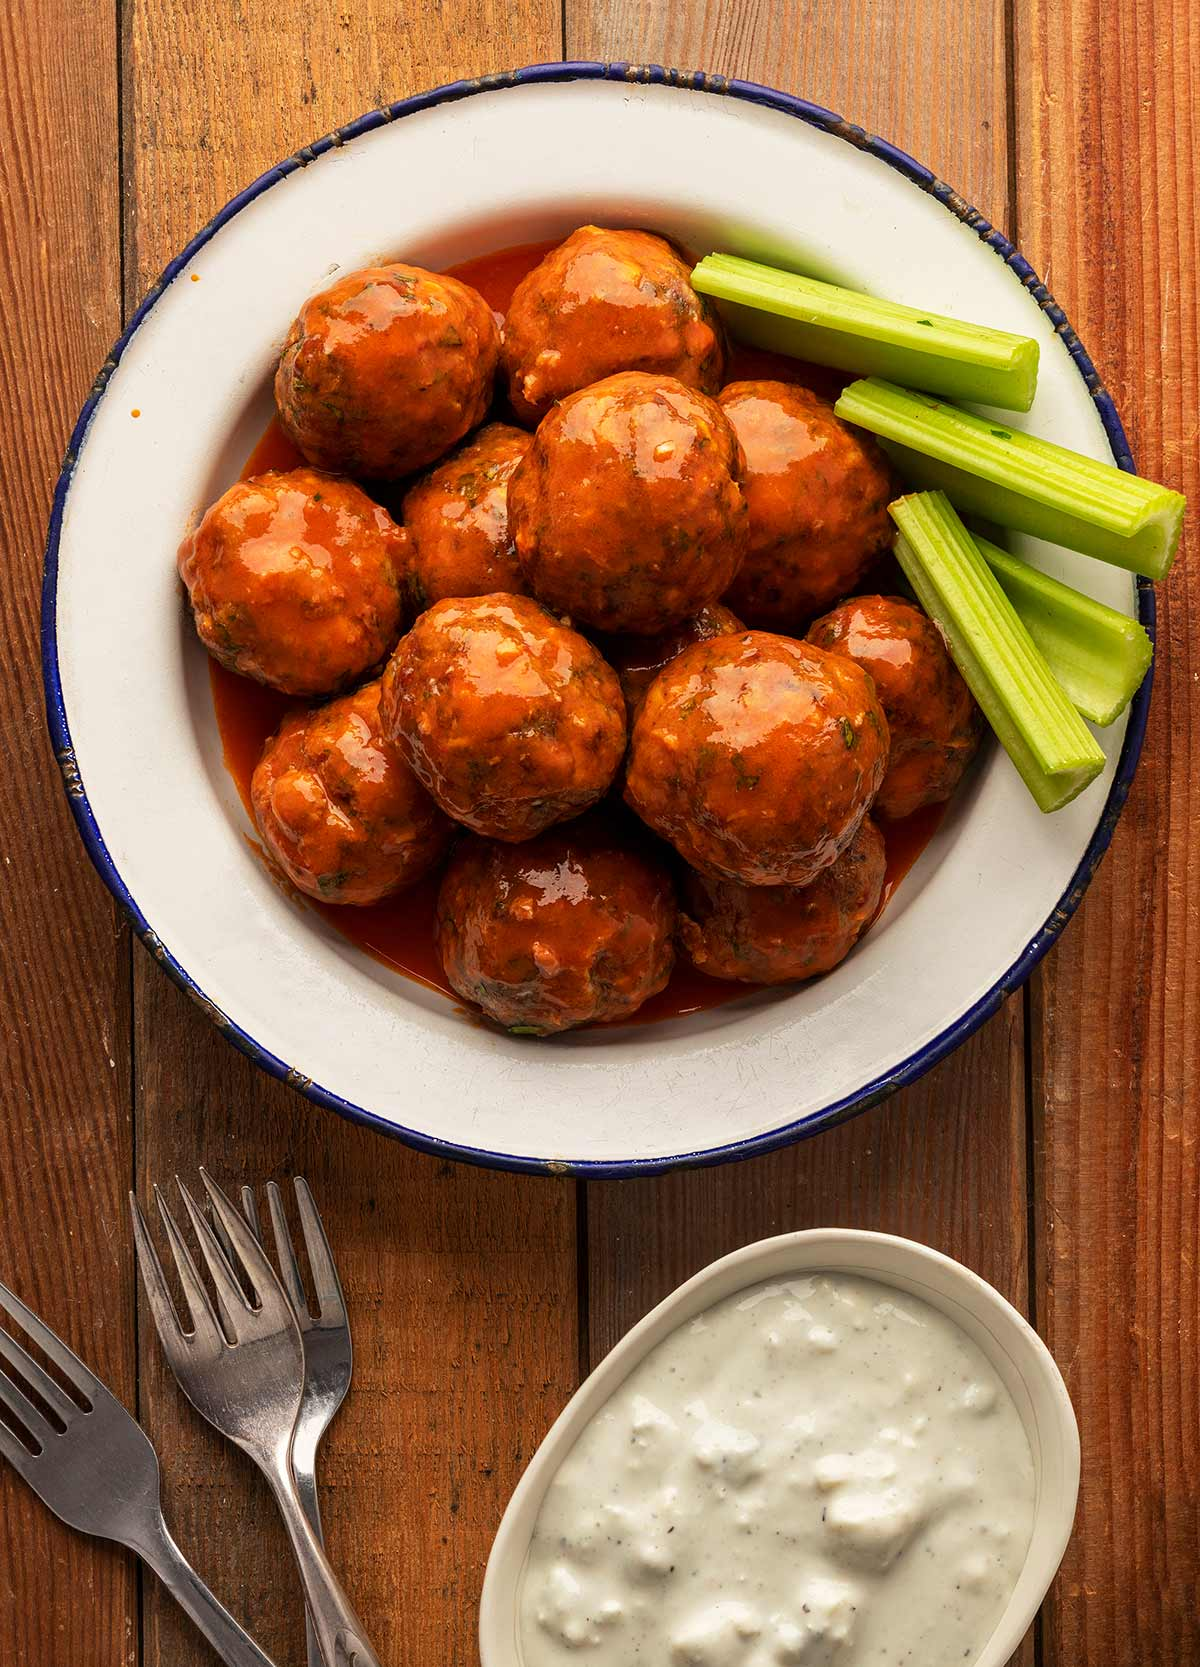 A plate of Buffalo meatballs with blue cheese sauce.